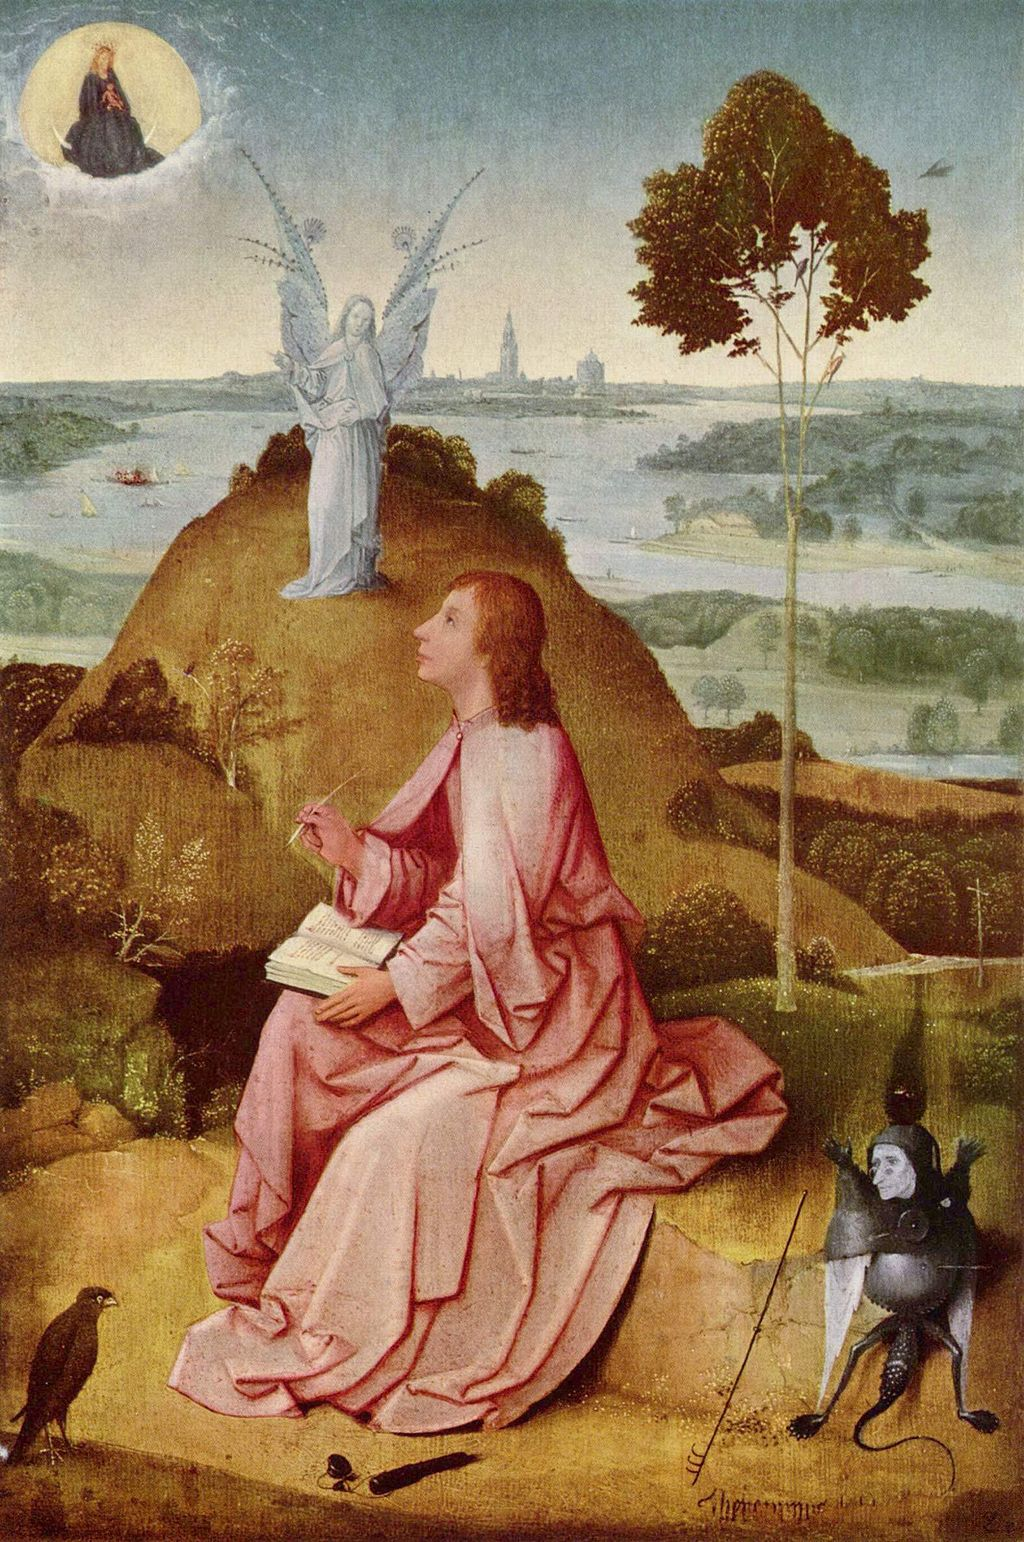 Larry Hunt Bible Commentary // Saint John on Patmos by Hieronymus Bosch